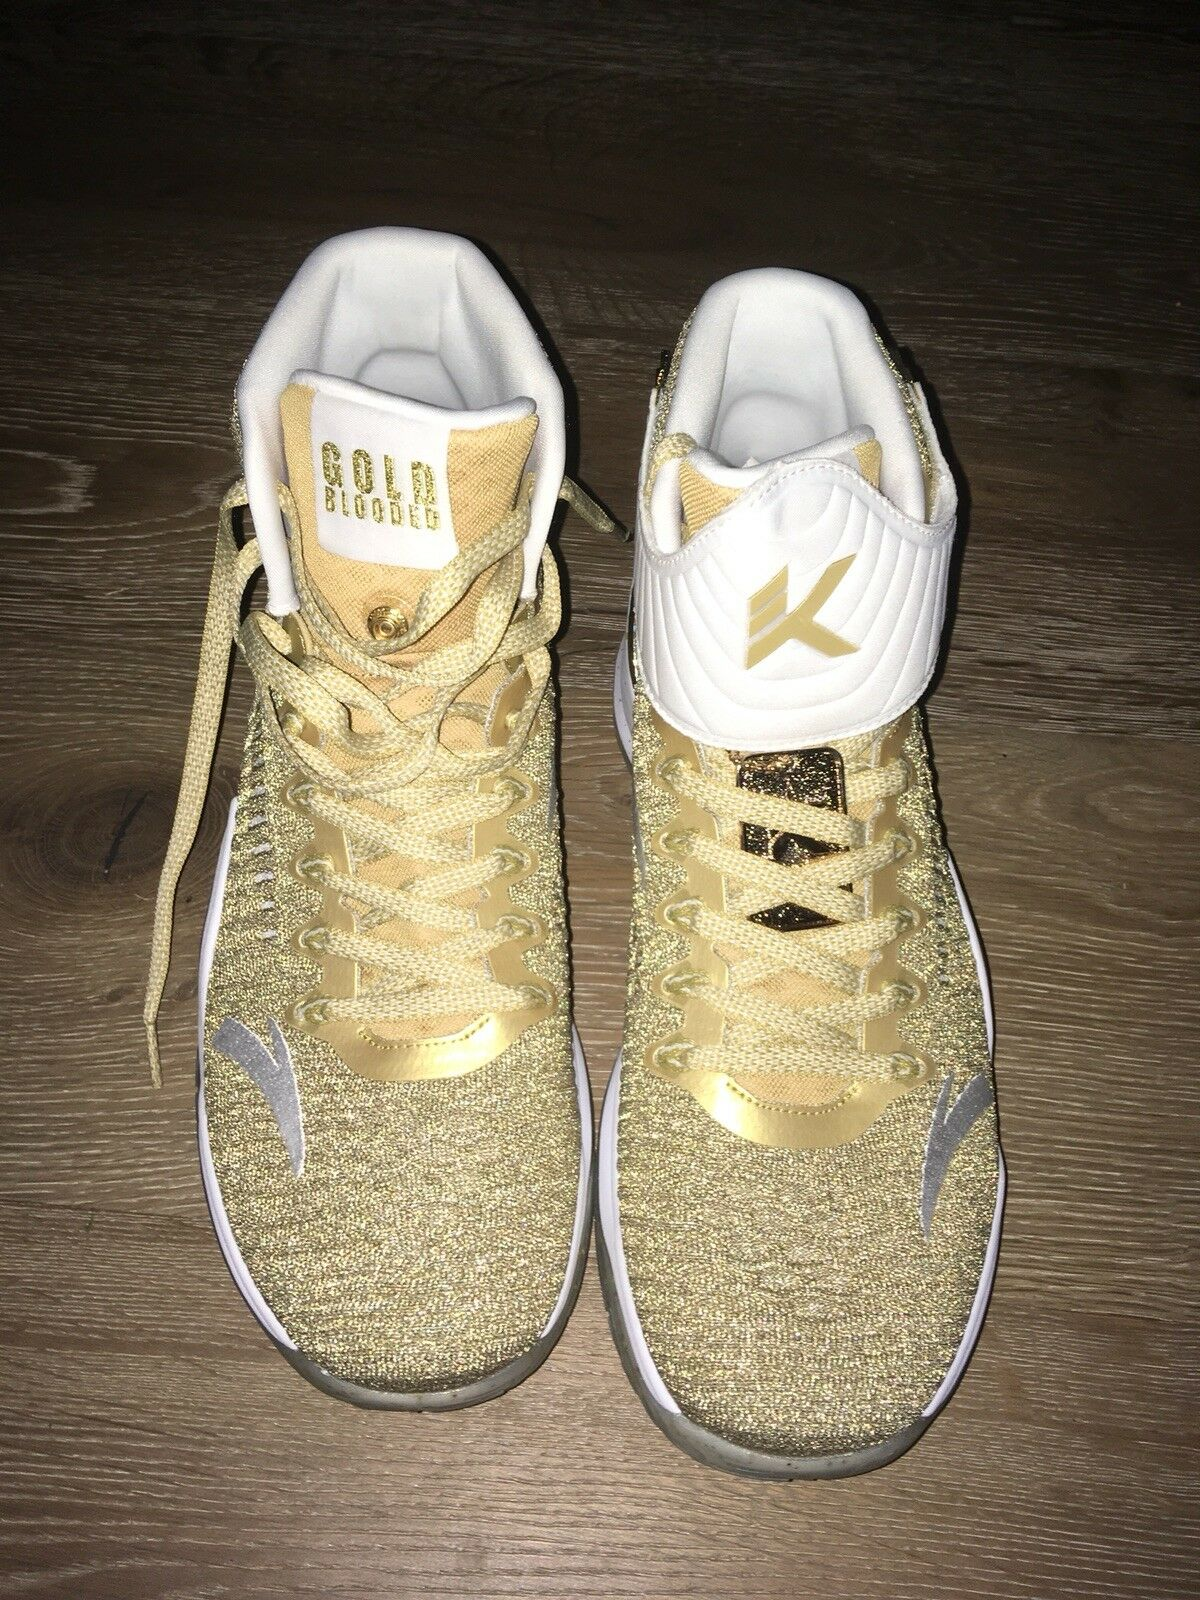 """Anta Kt3 """"Gold Blooded"""" Shoes Size 10.5 (used In commercial)"""